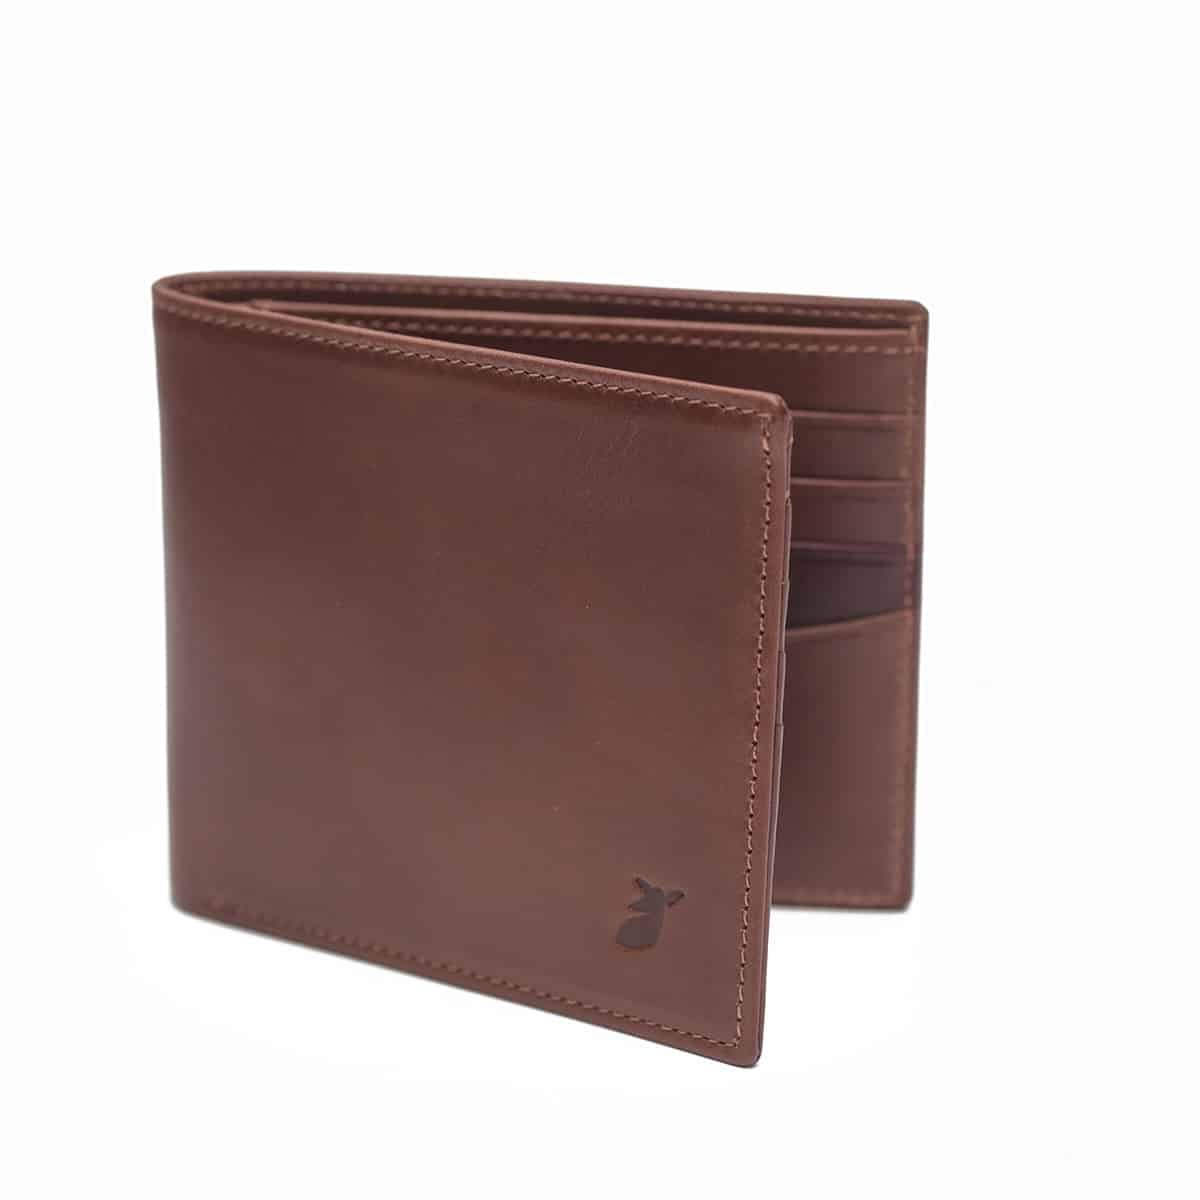 Wallet Coffee bean and Bordeaux by PIED DE BICHE